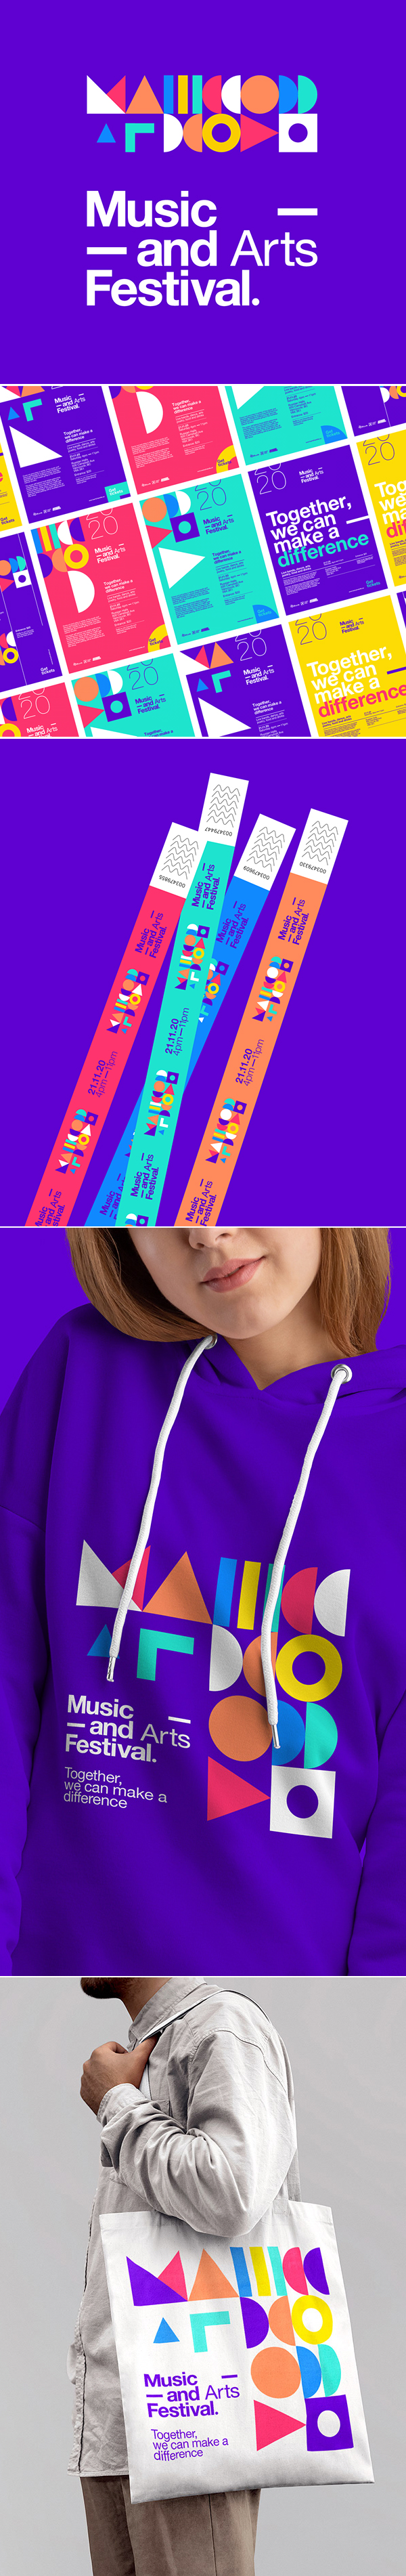 Music and Arts Festival Identity by Broklin Onjei